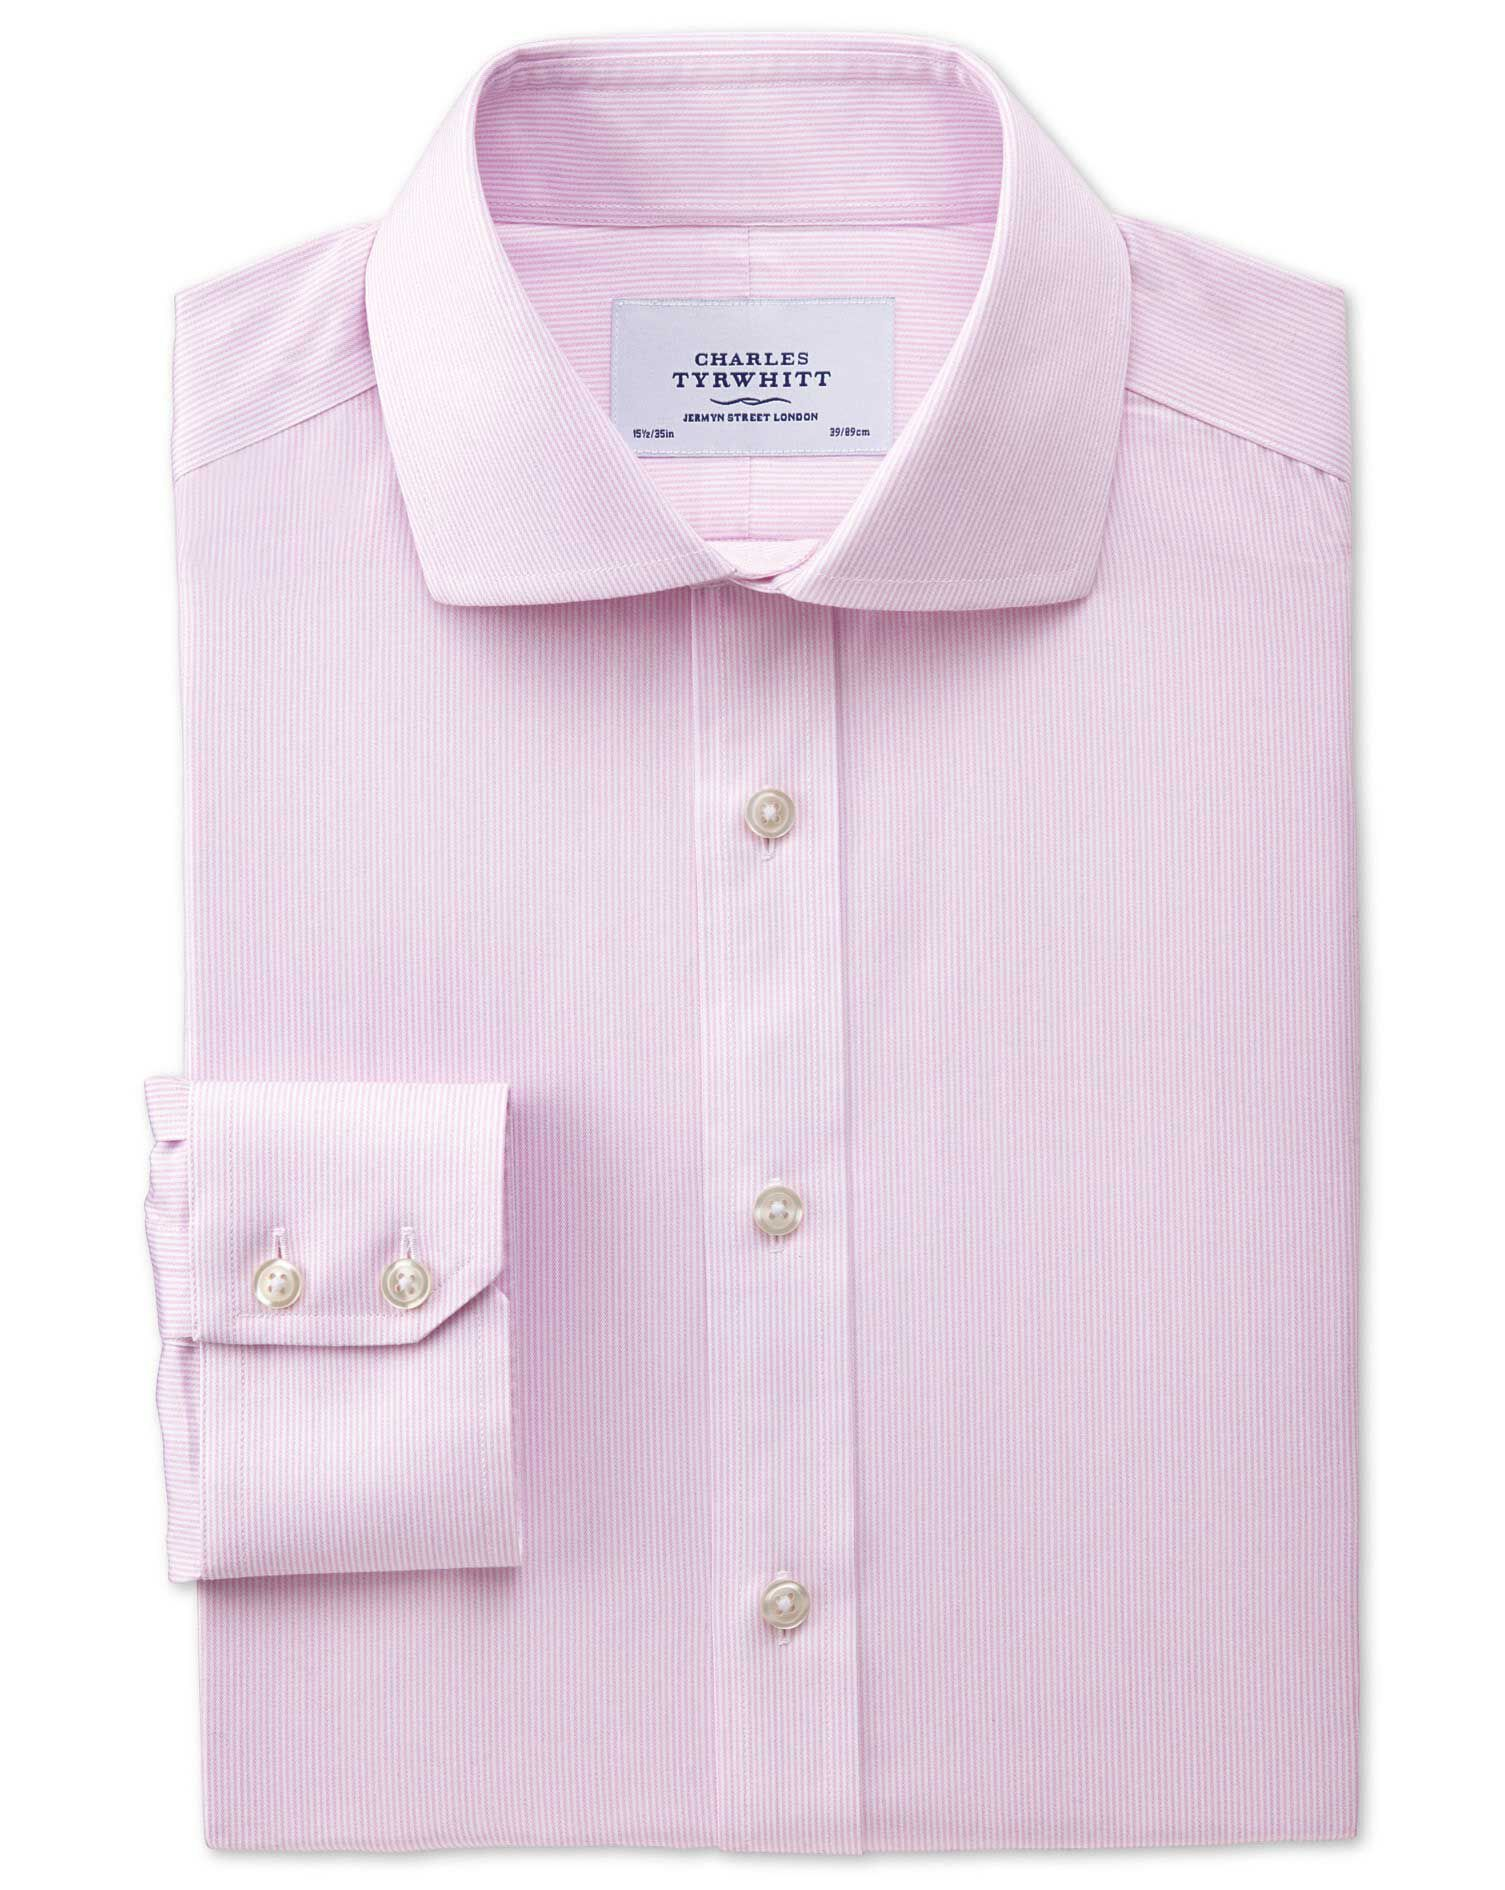 Slim Fit Cutaway Collar Non-Iron Mouline Stripe Pink Cotton Formal Shirt Single Cuff Size 16.5/38 by